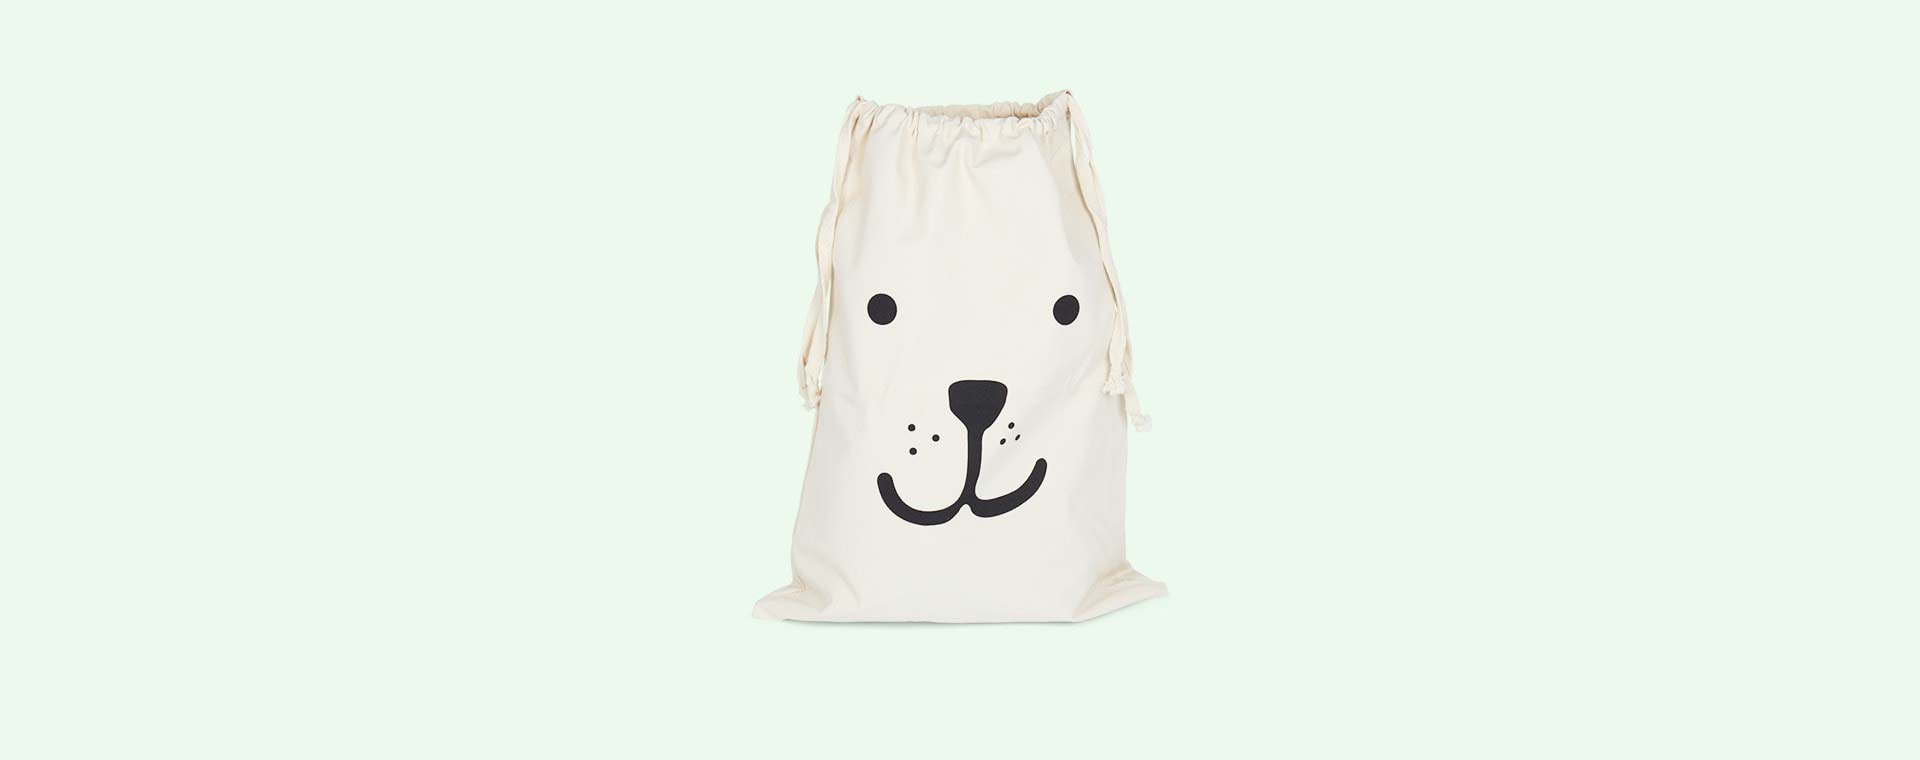 Bear Tellkiddo Fabric Drawstring Bag